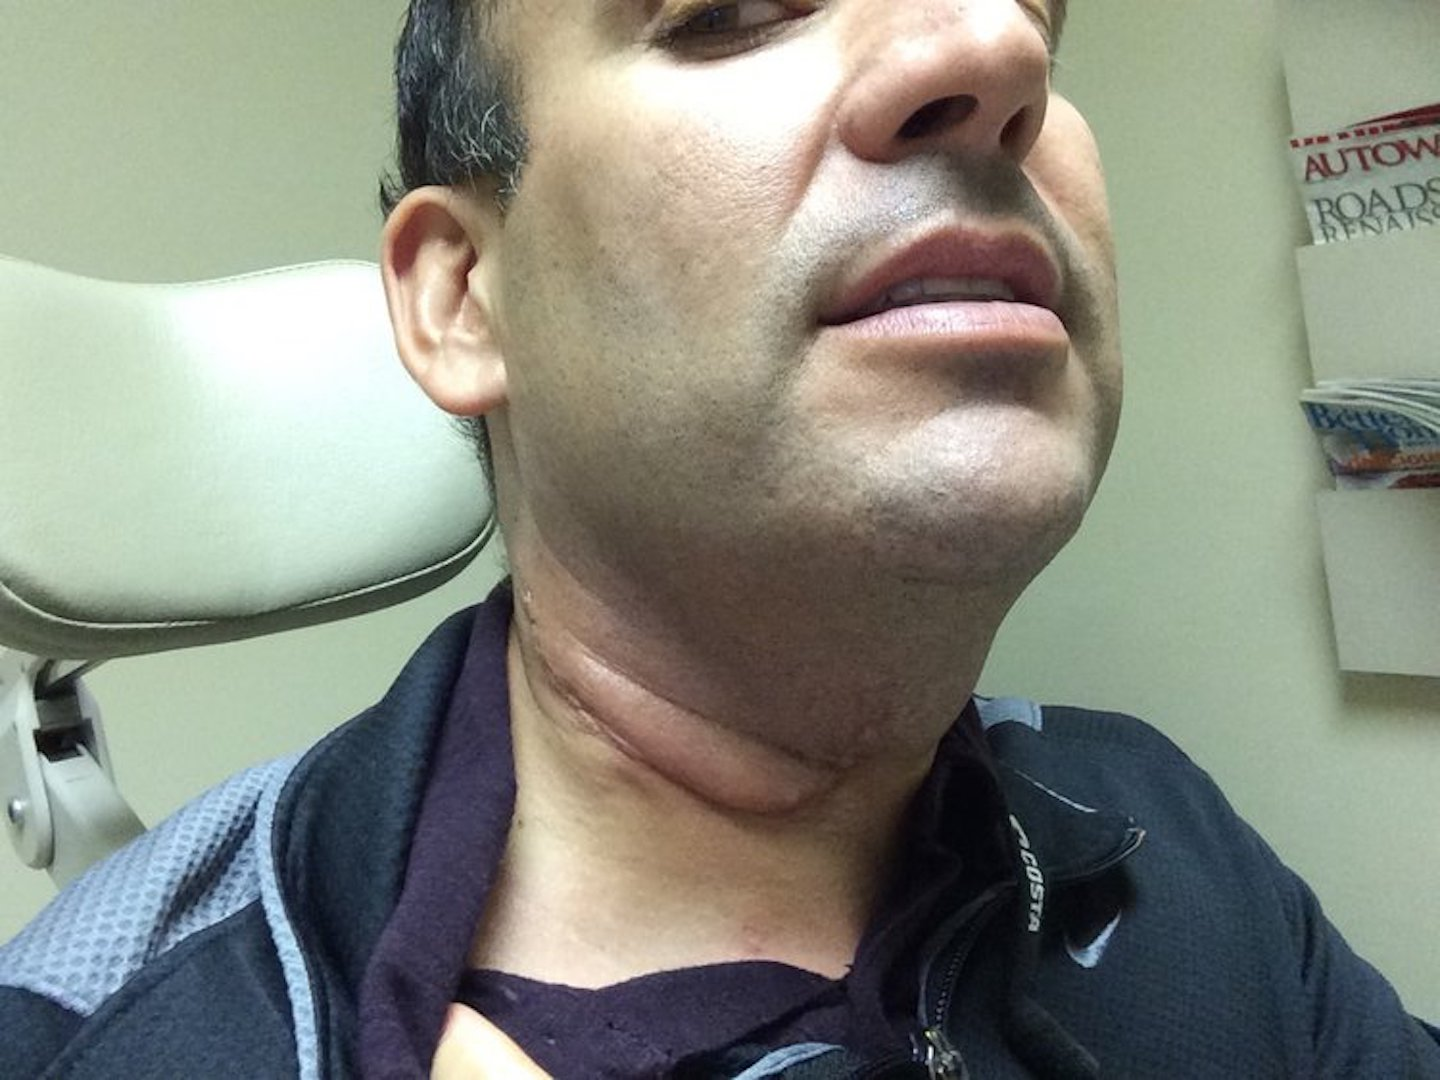 hpv head and neck cancer treatment)